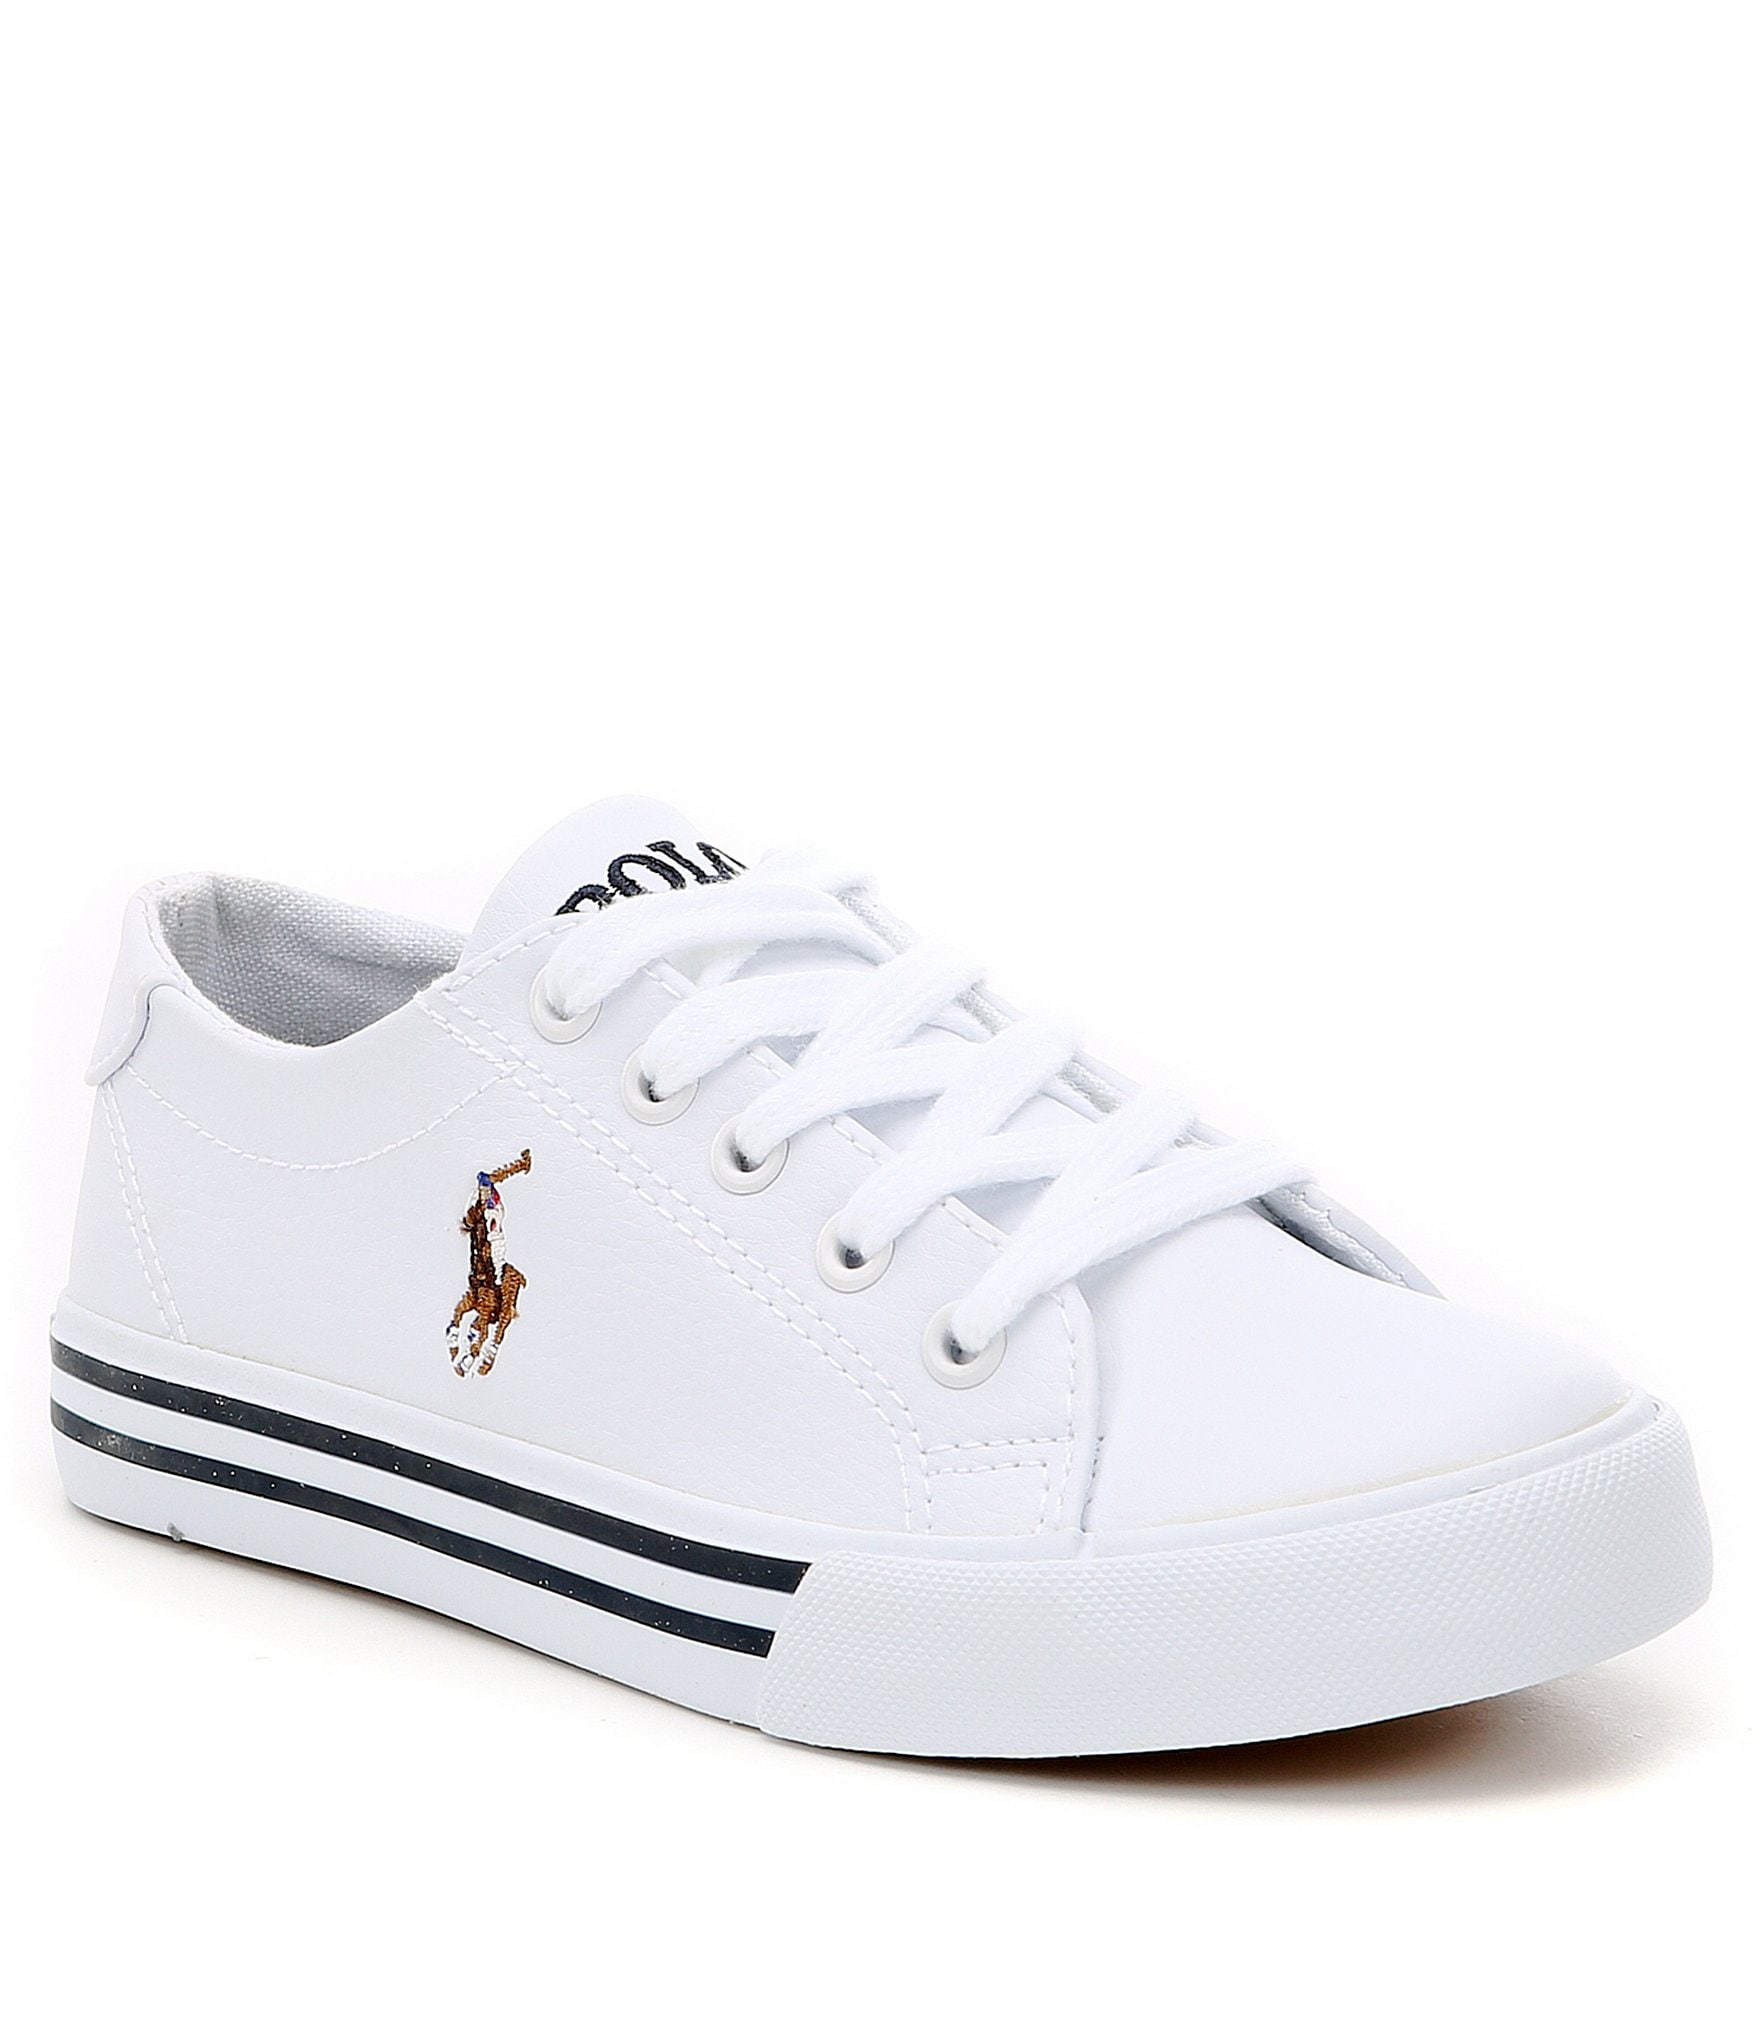 Ralph Lauren White Toddler Shoes